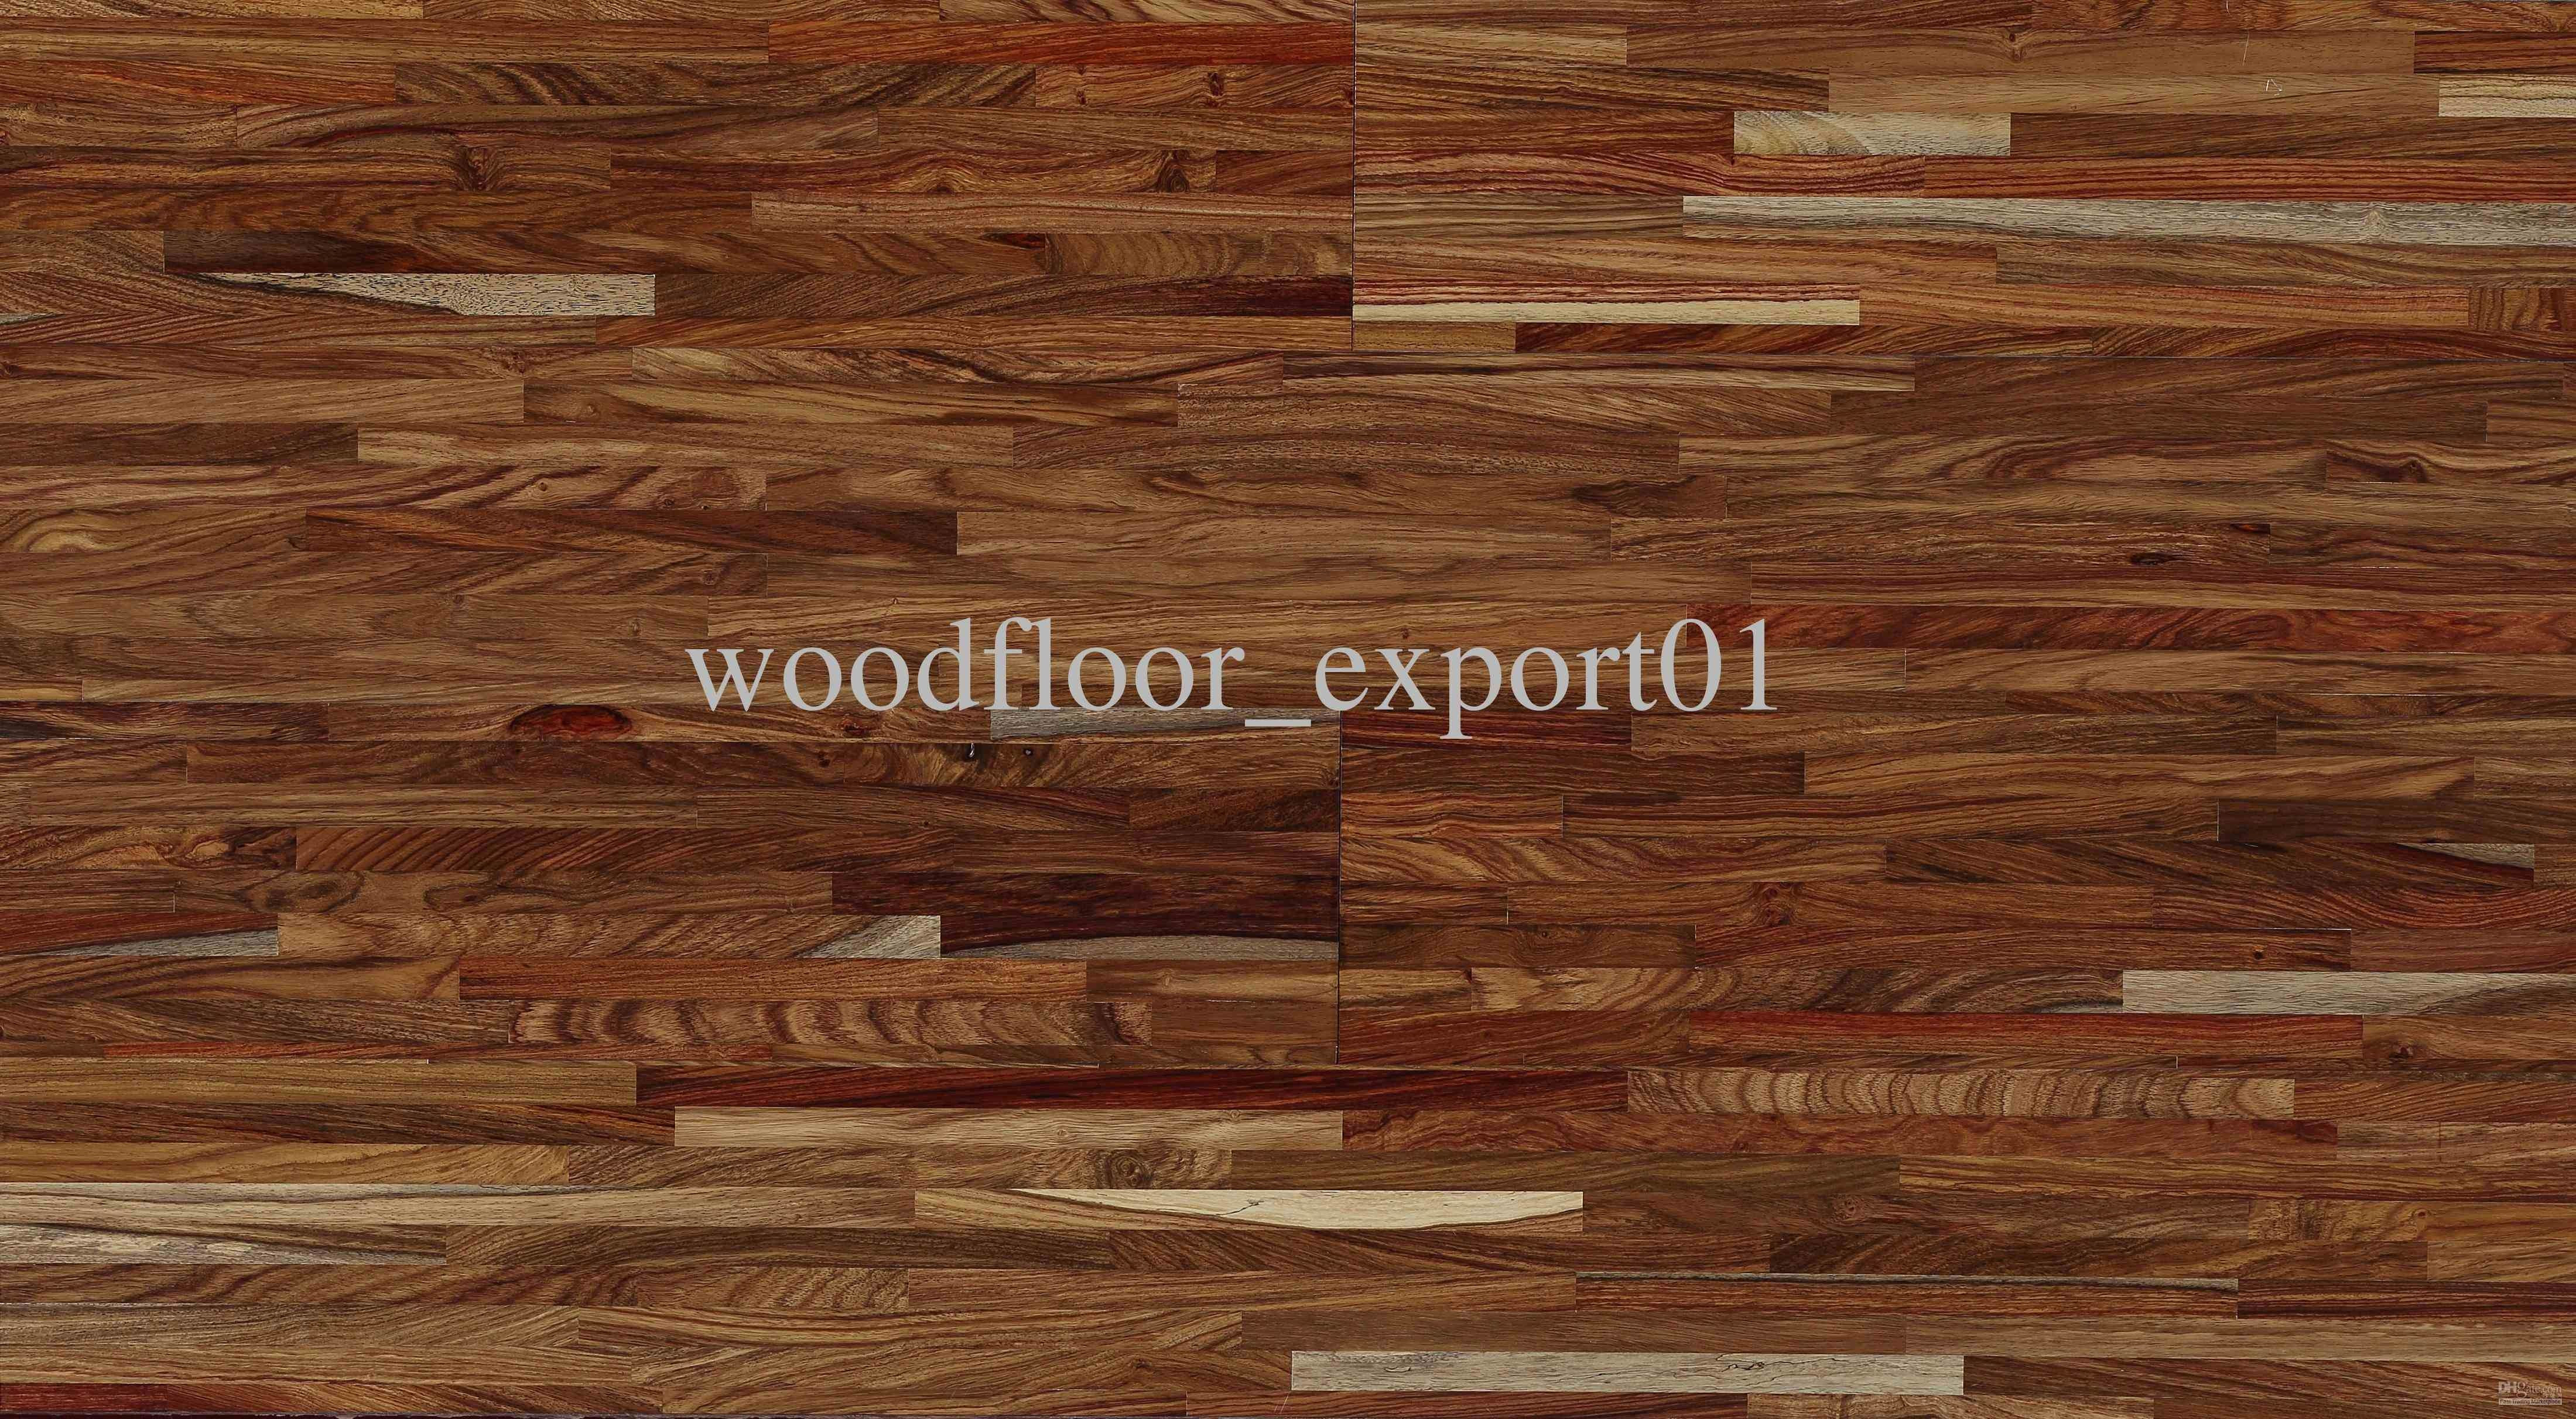 walnut hardwood flooring pros cons of 19 awesome pergo vs hardwood pics dizpos com with 50 lovely hardwood floor options 50 s